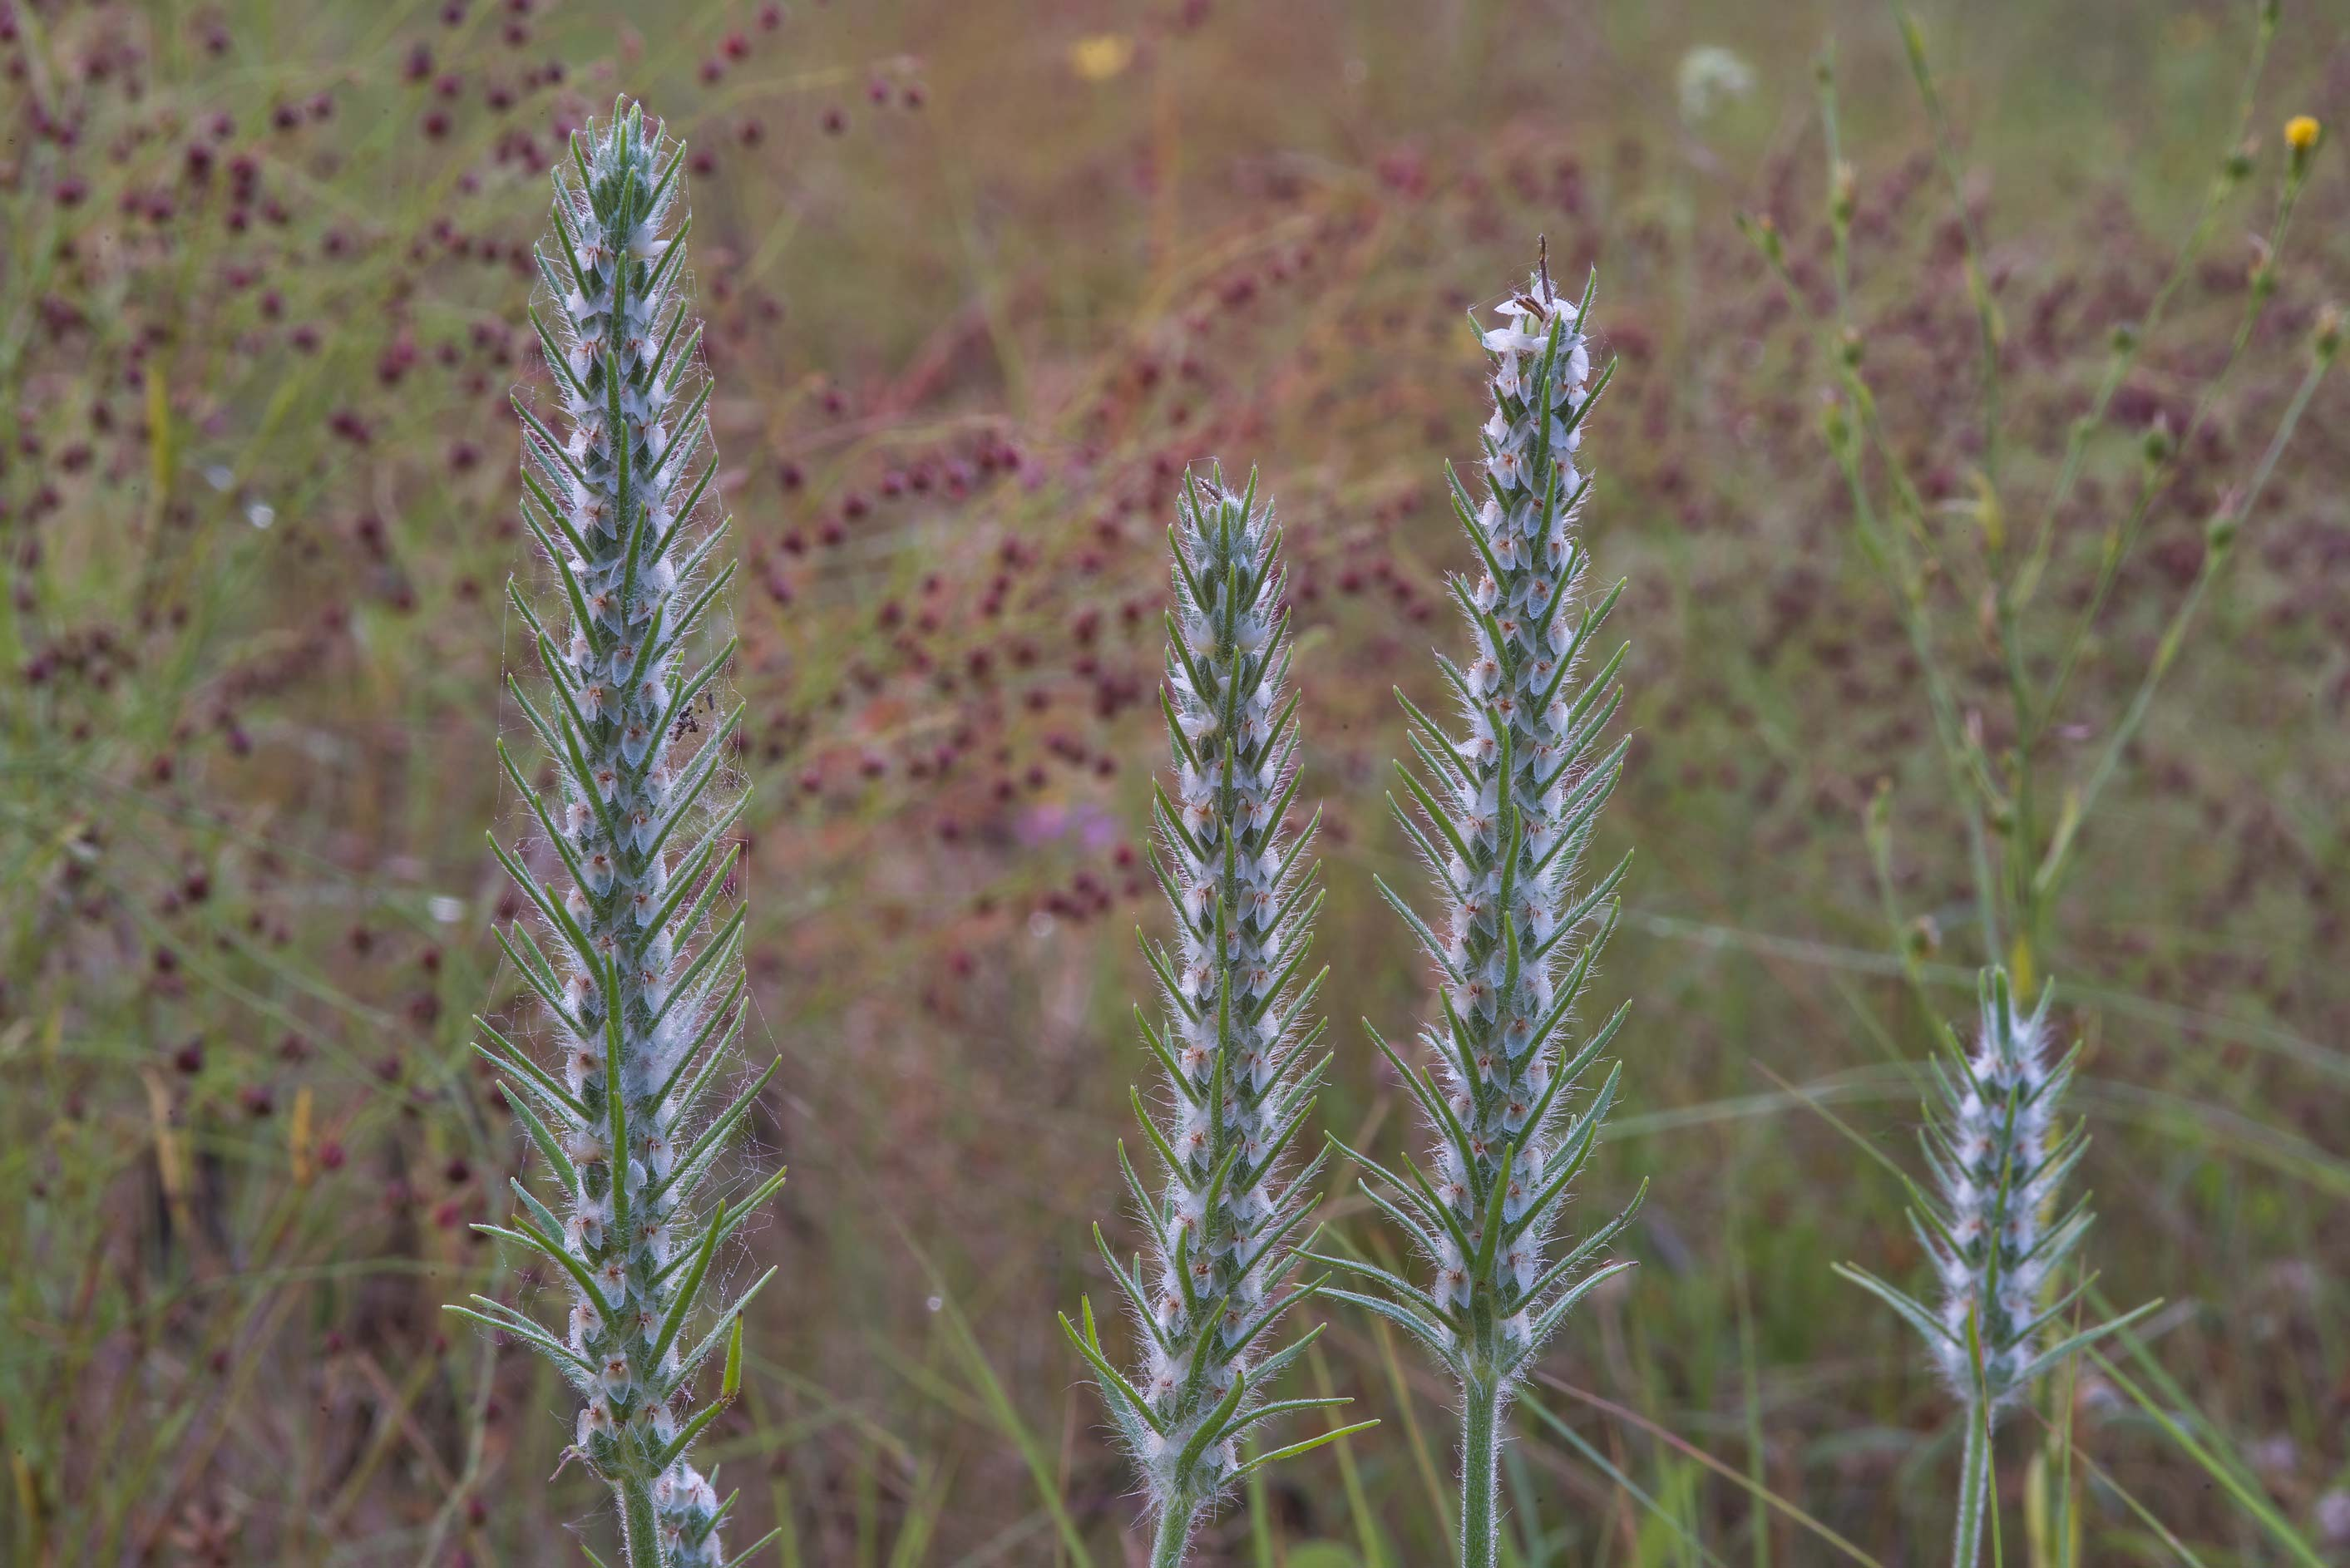 Largebracted plantain (Plantago aristata) in Lick Creek Park. College Station, Texas